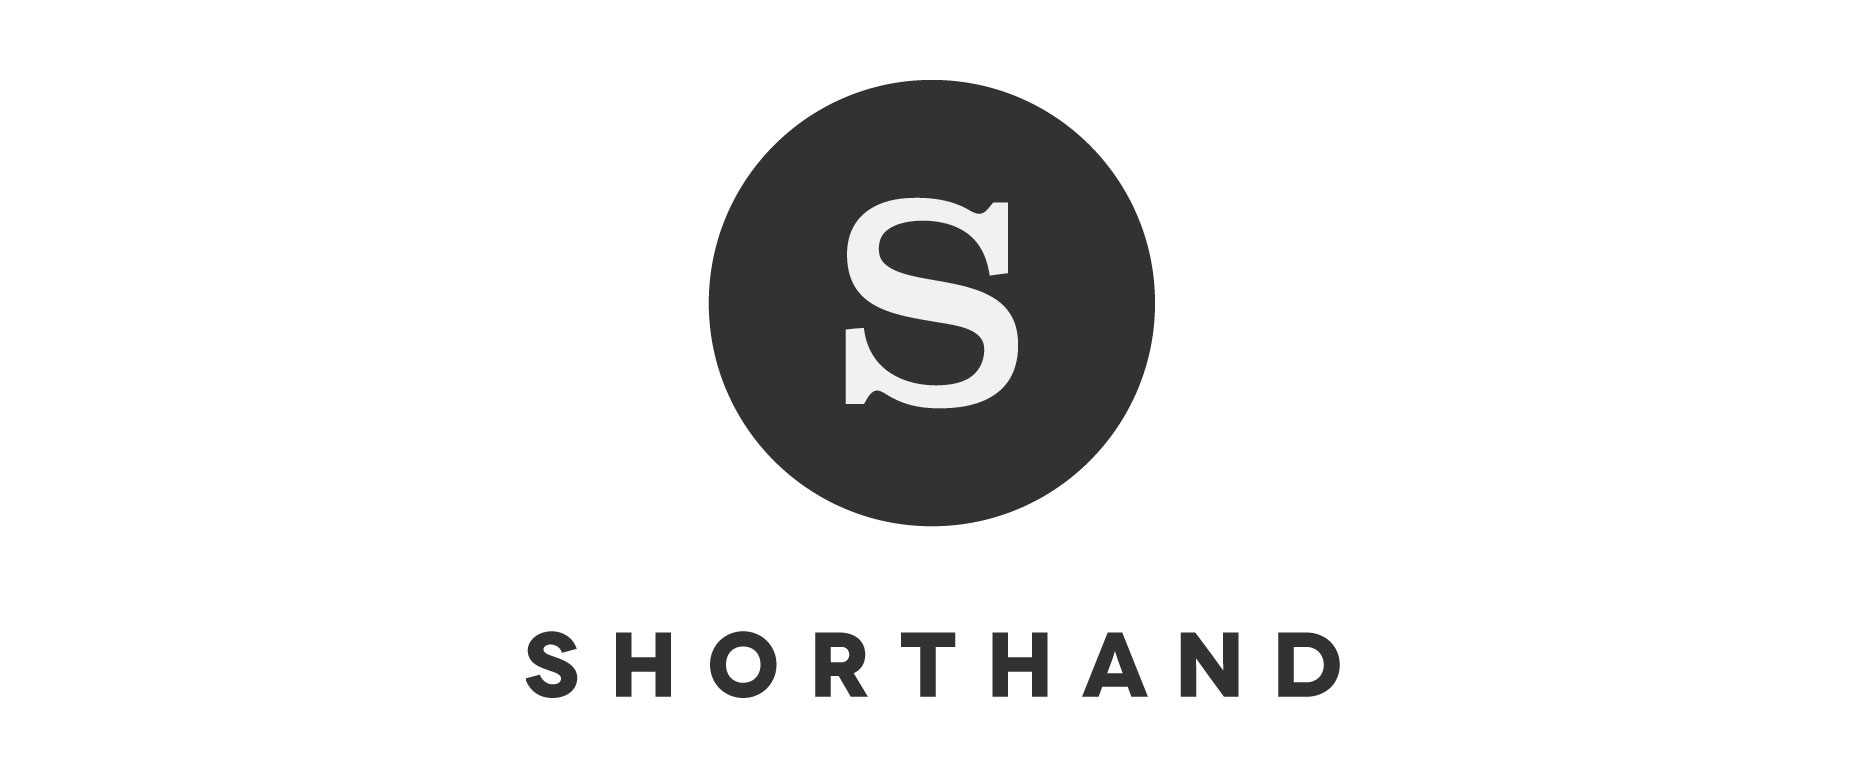 shorthand-logo-square-whitebg